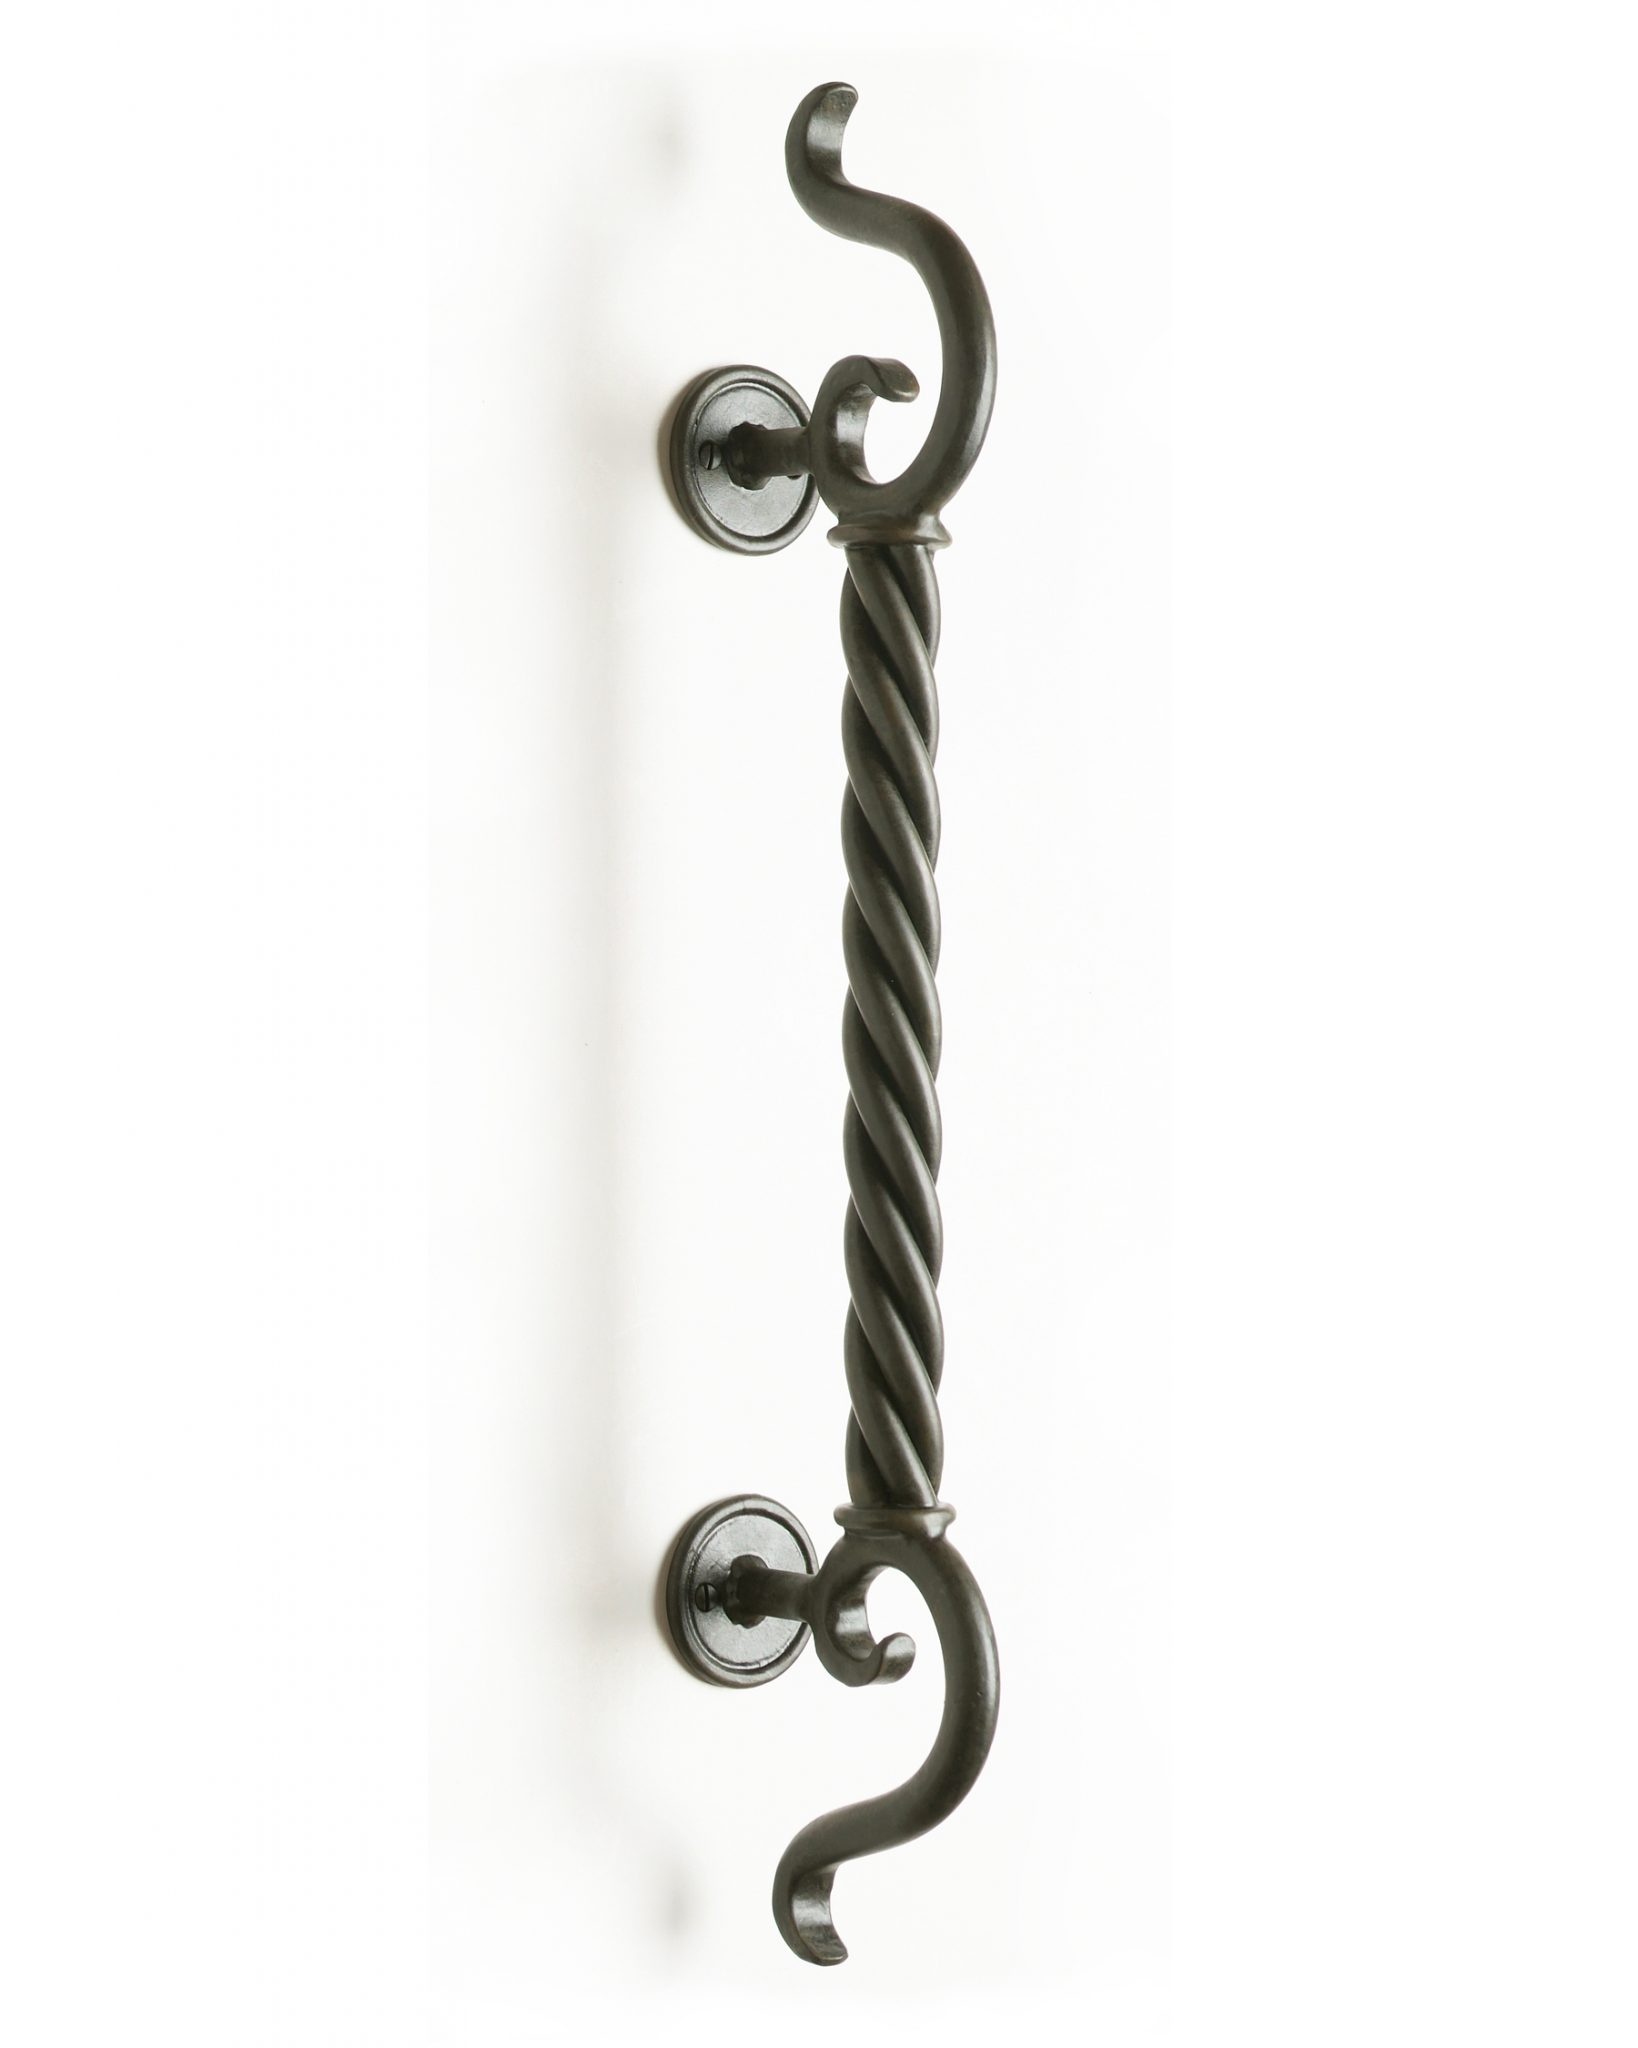 Zues wrought iron door handles